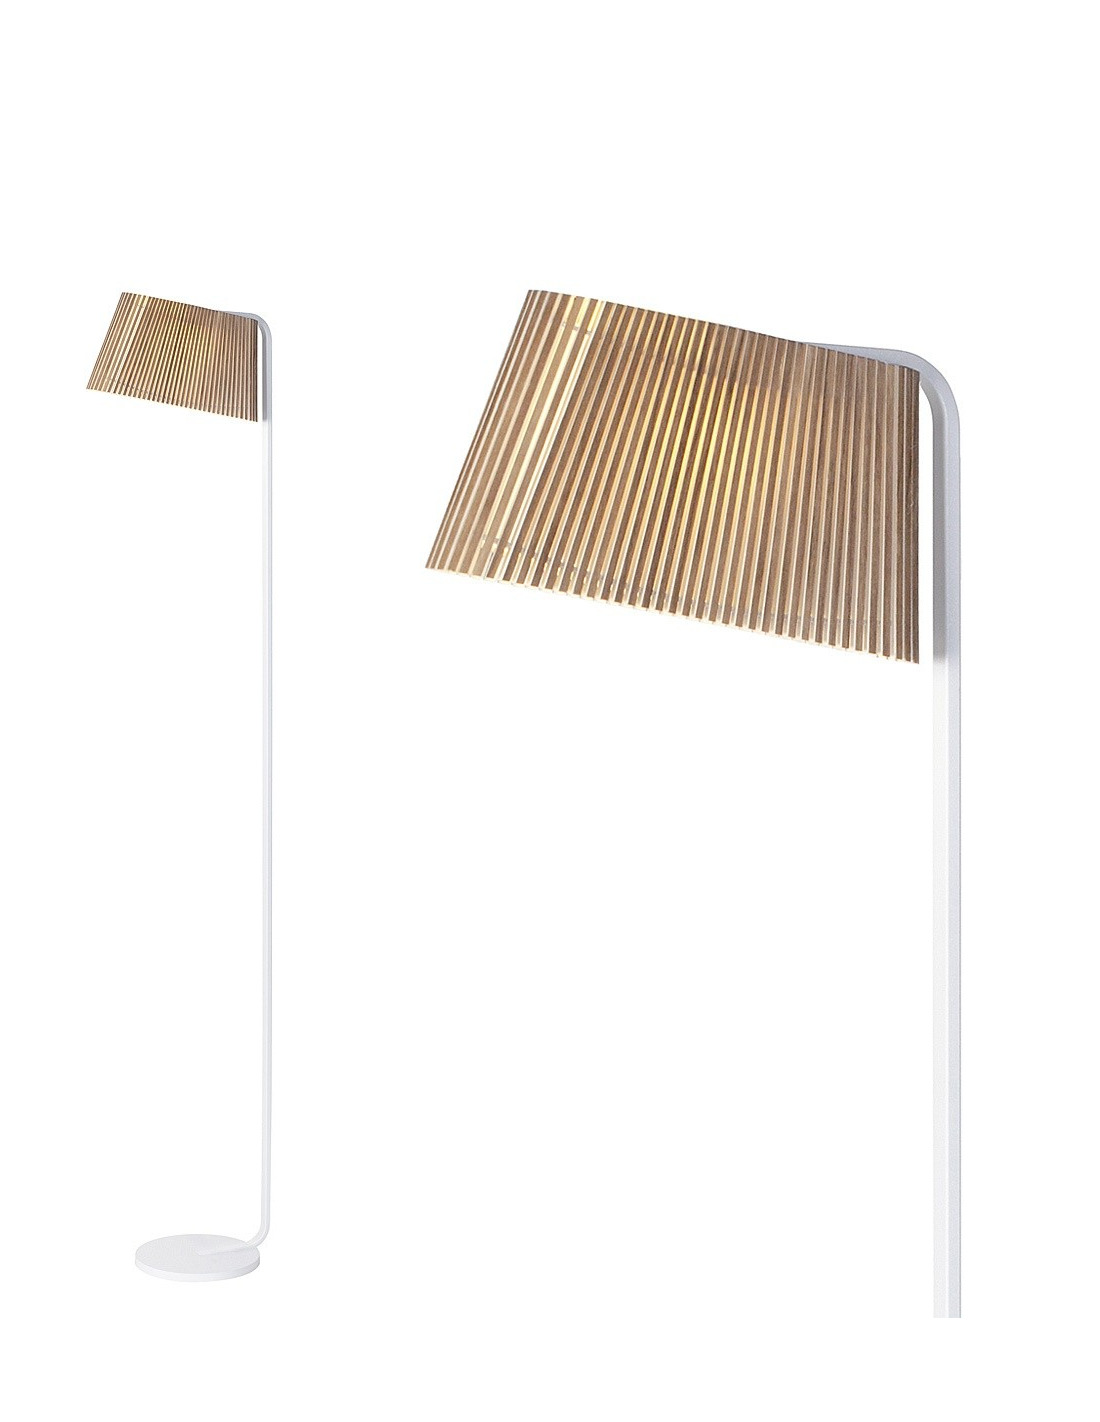 lampadaire led au design scandinave owalo 7010 en bois. Black Bedroom Furniture Sets. Home Design Ideas